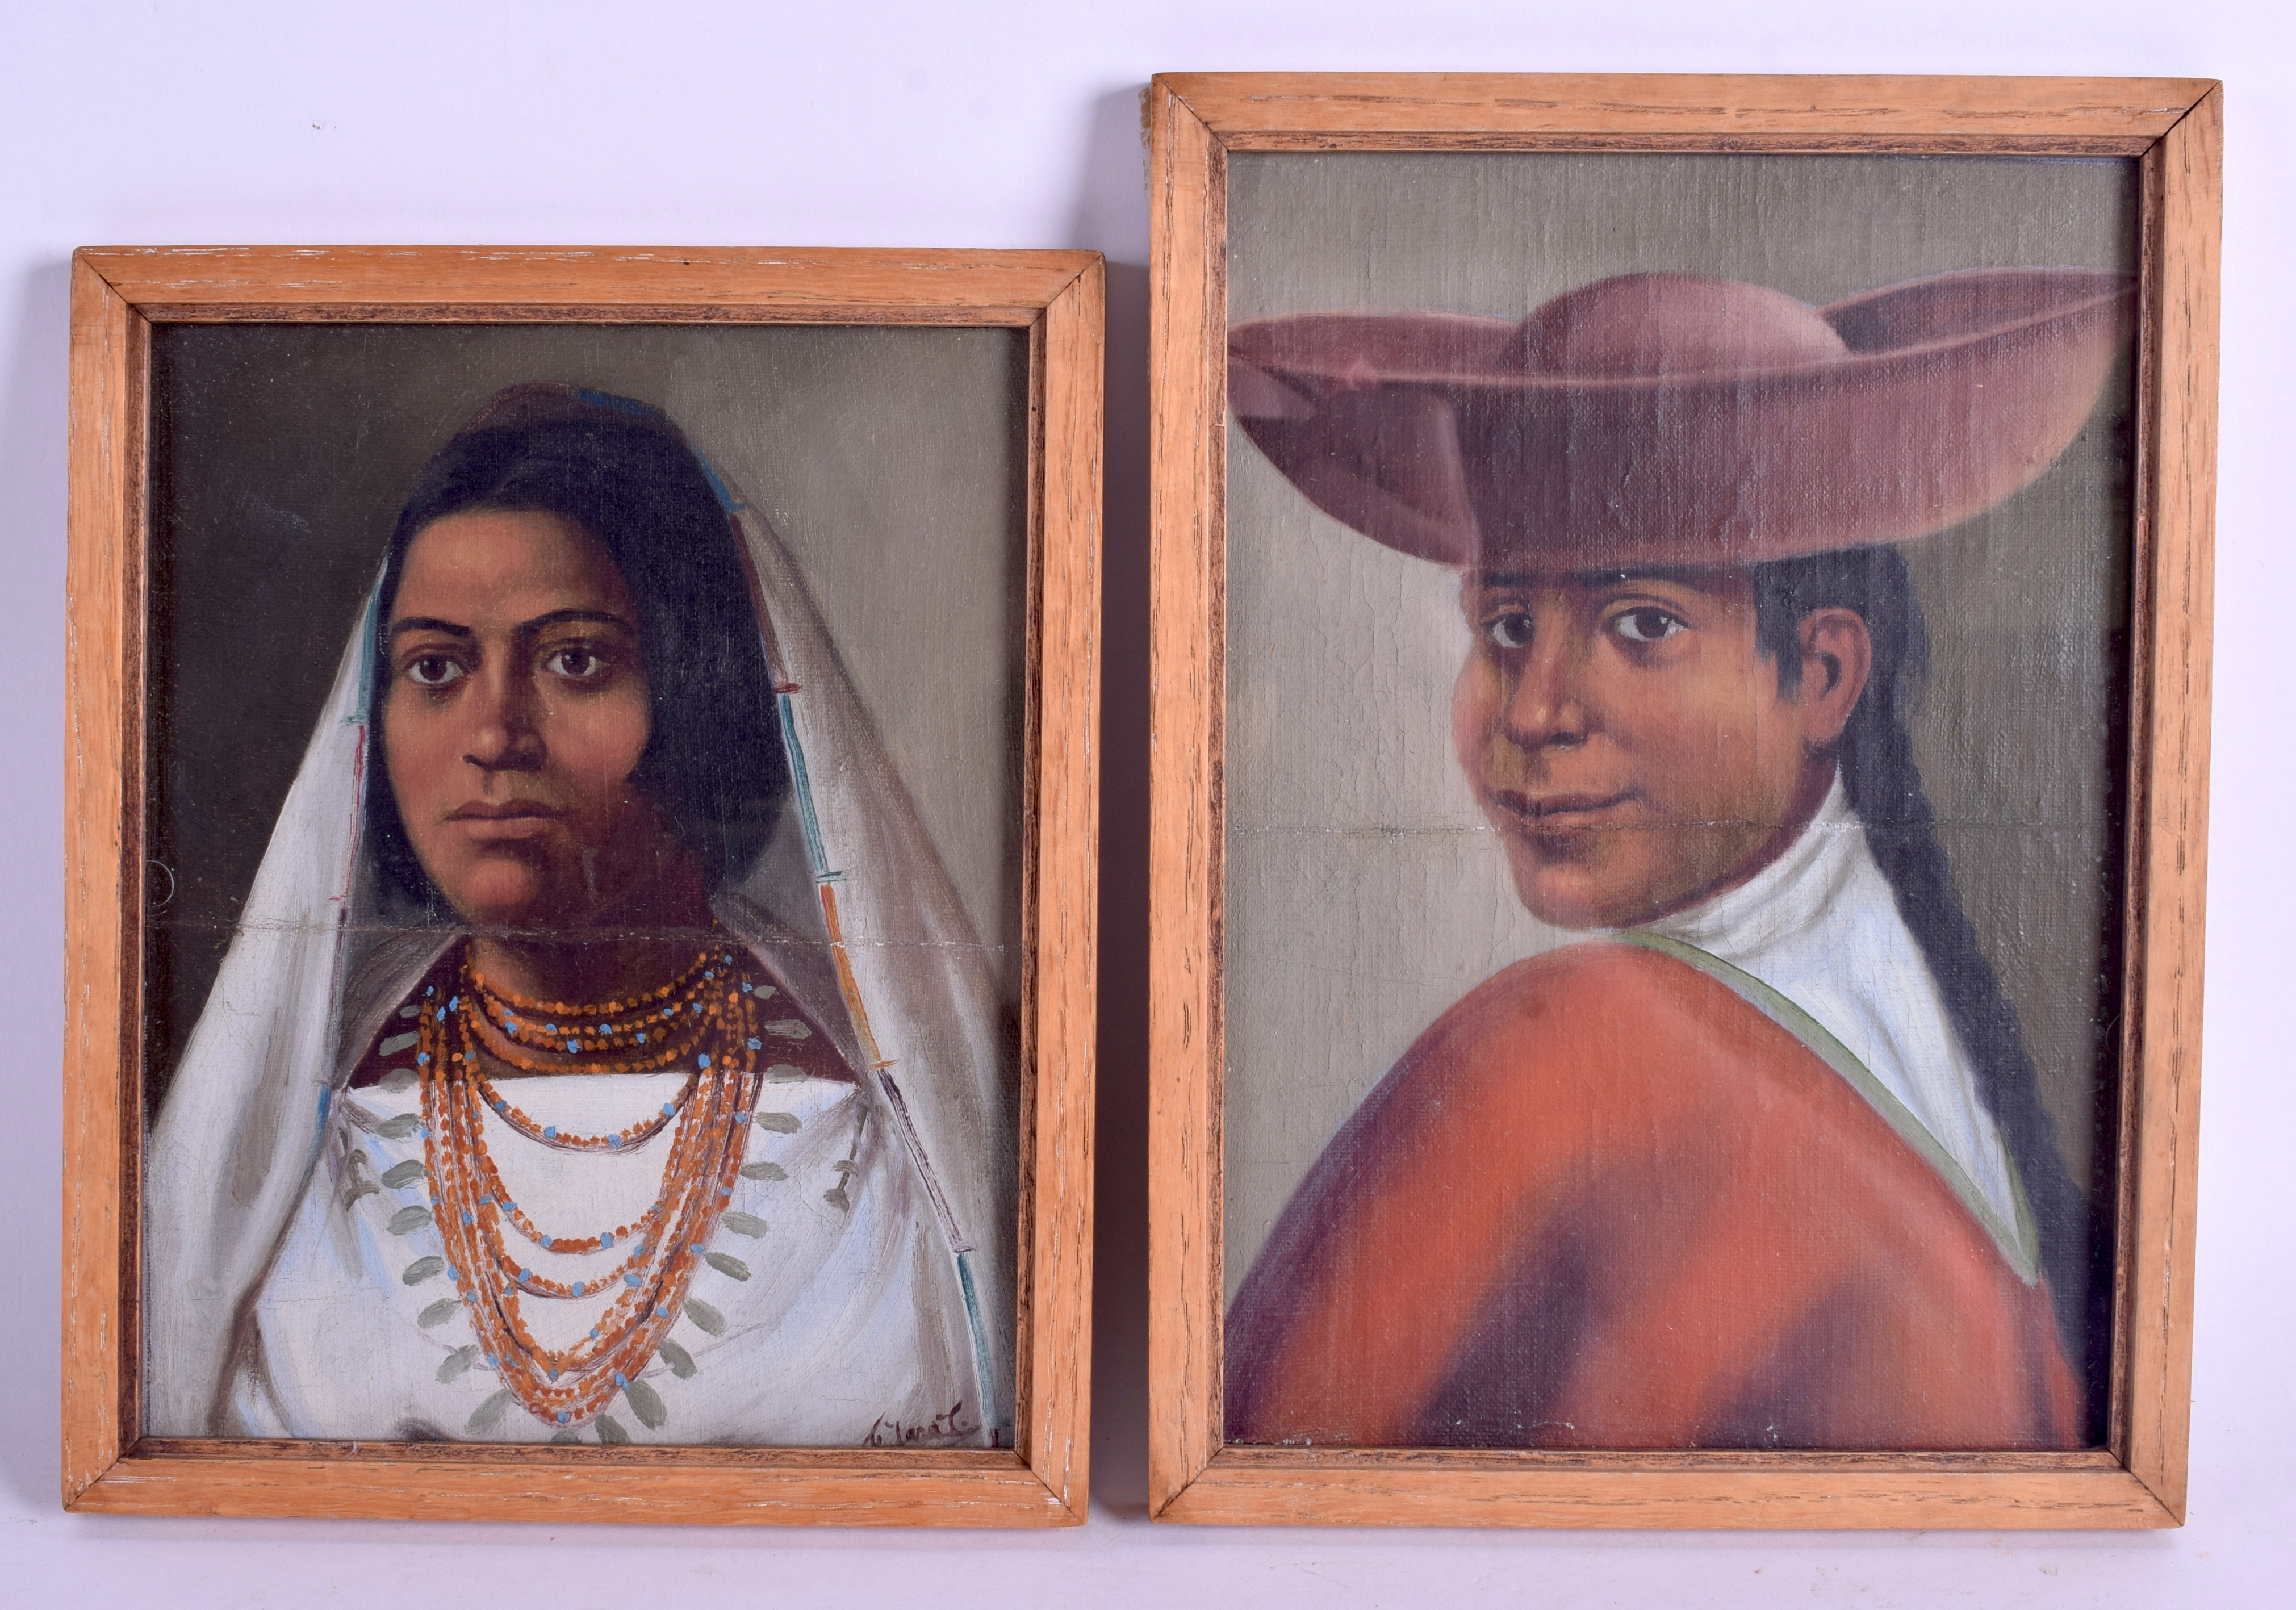 Lot 449 - A PAIR OF 19TH CENTURY CONTINENTAL OIL ON CANVAS depicting South American females. Image 14 cm x 18